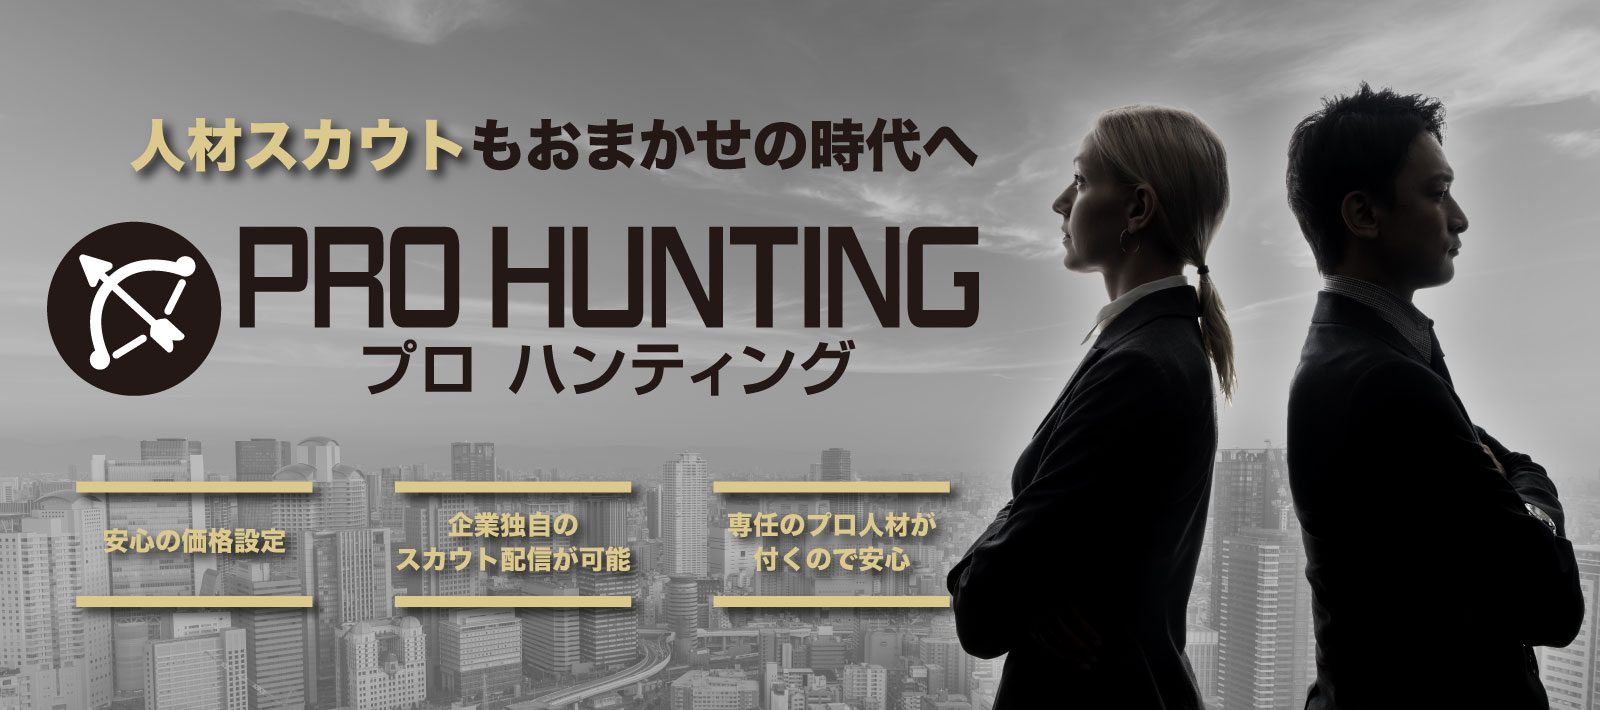 prohunting_banner